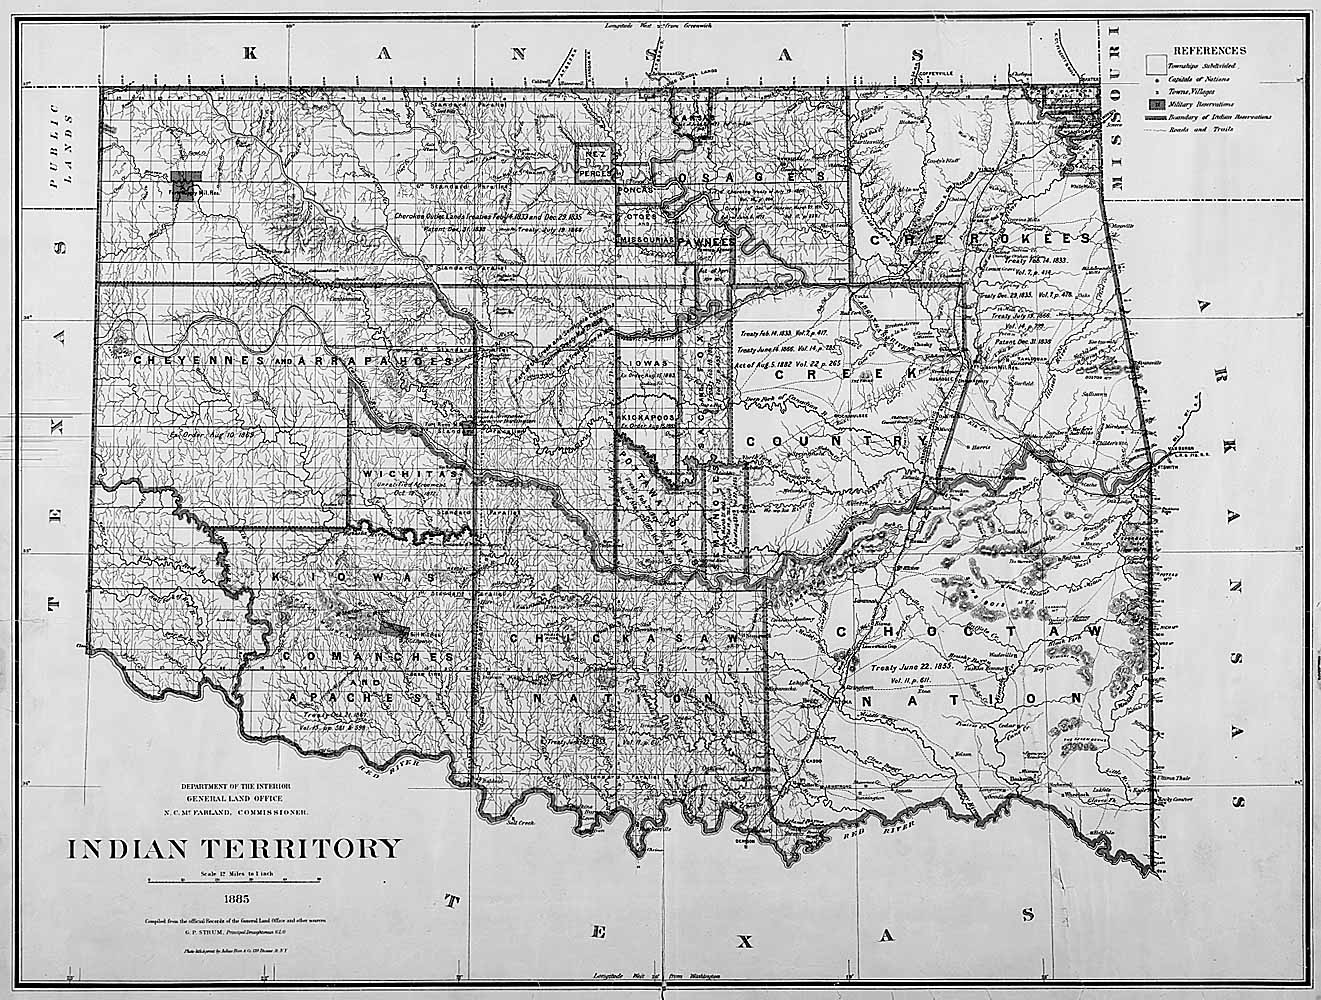 Maps of Indian Territory the Dawes Act and Will Rogers